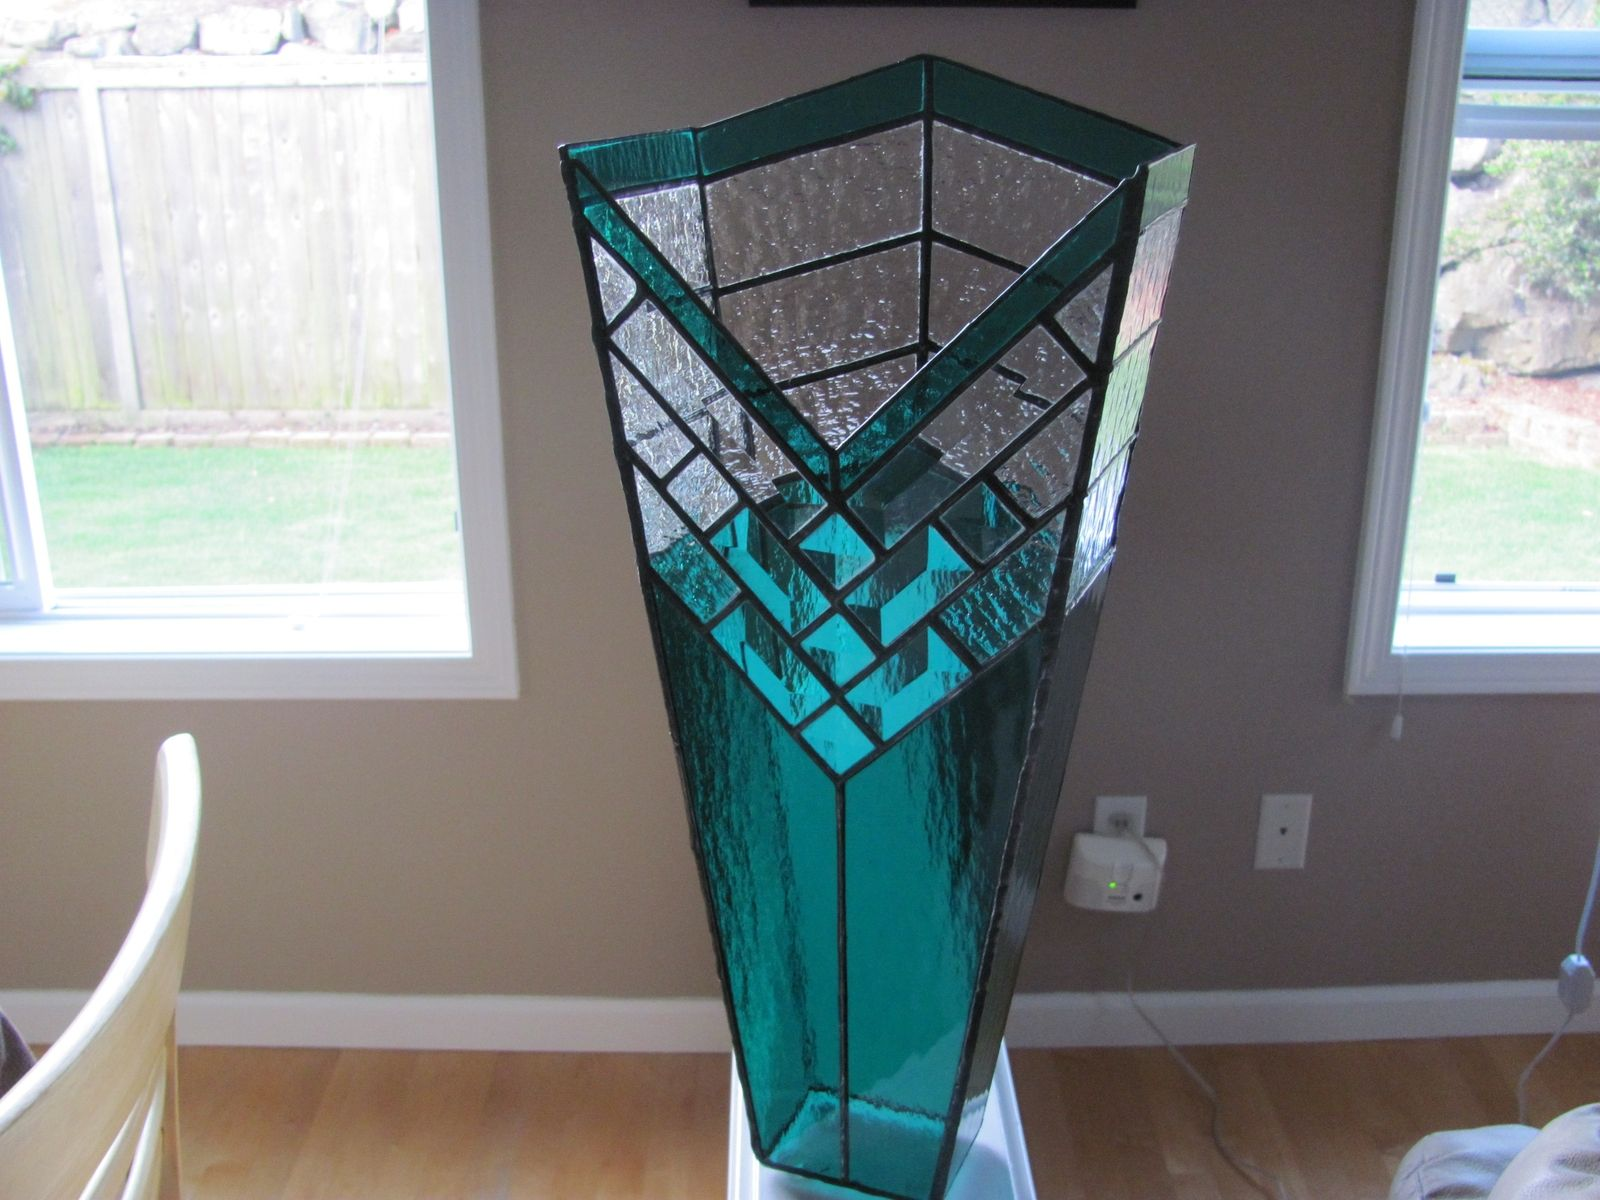 Hand Crafted Stained Glass Decorative Vase By Chapman